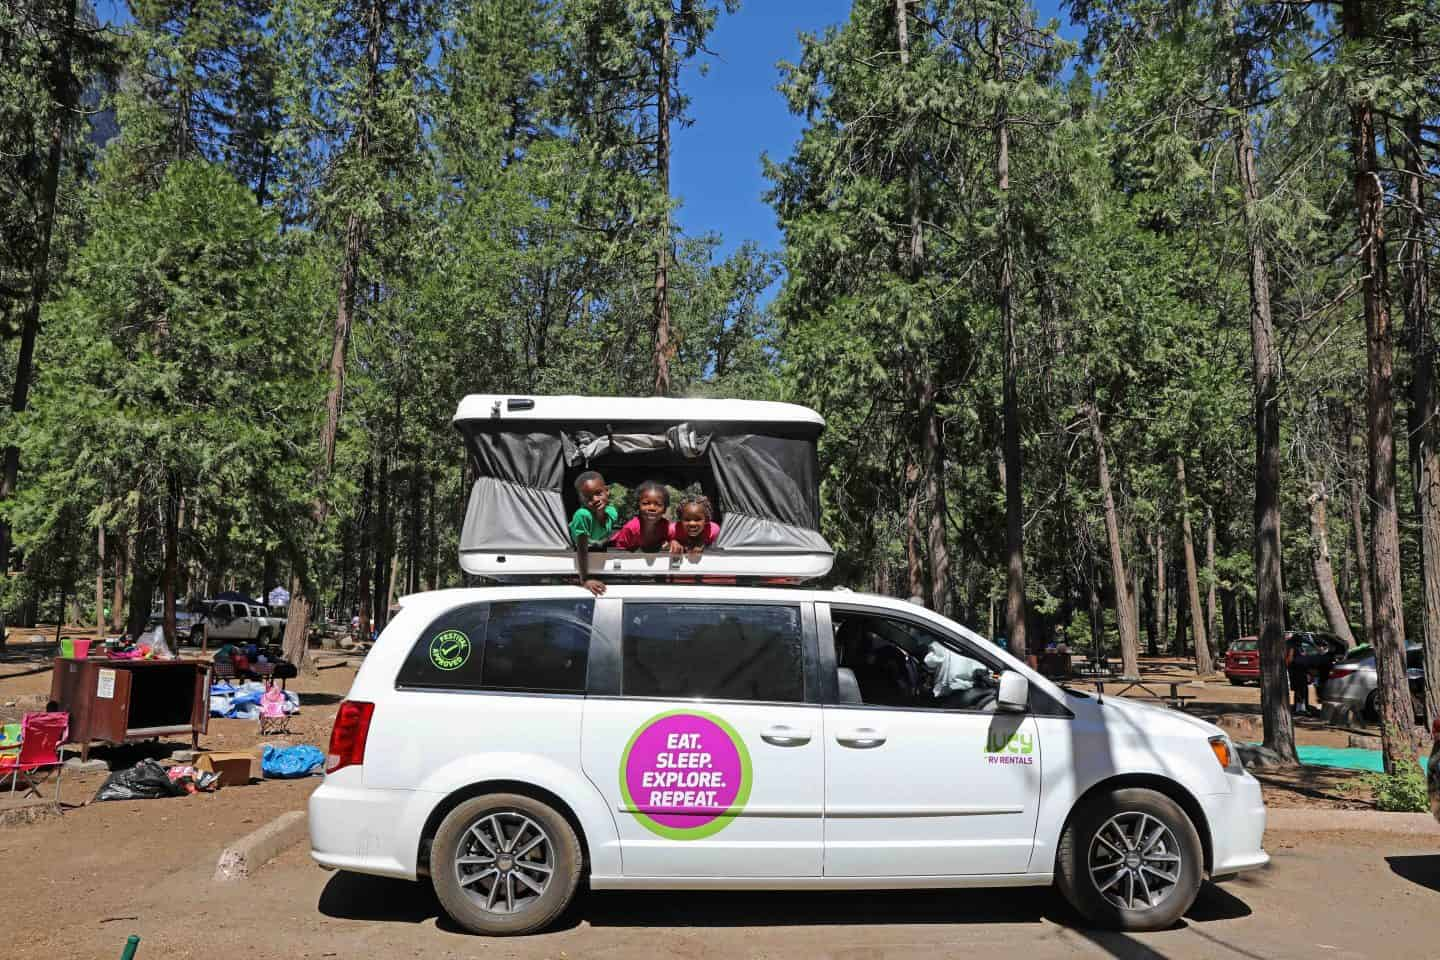 Camping With Kids In Yosemite National Park